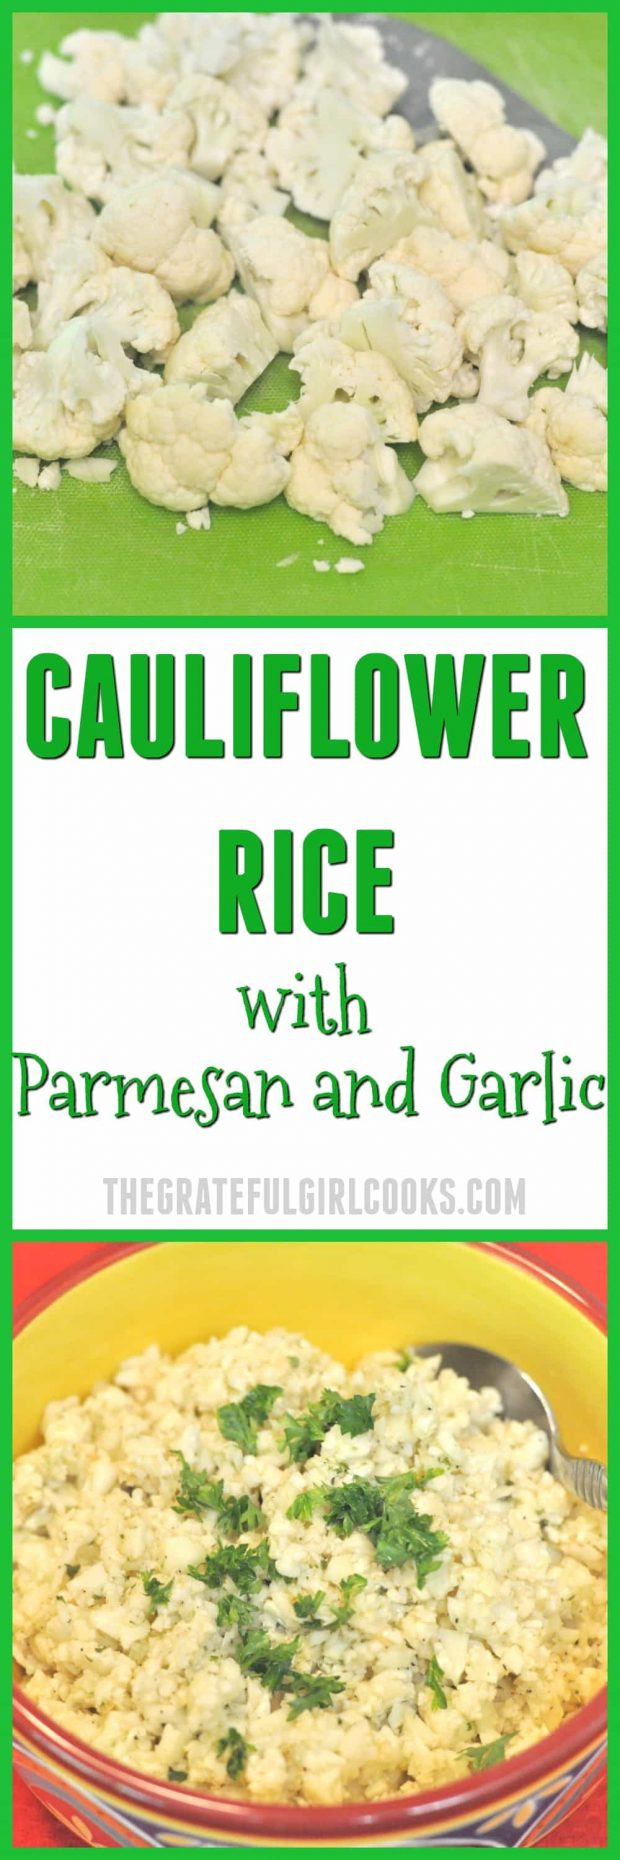 Cauliflower Rice with Parmesan and Garlic / The Grateful Girl Cooks!